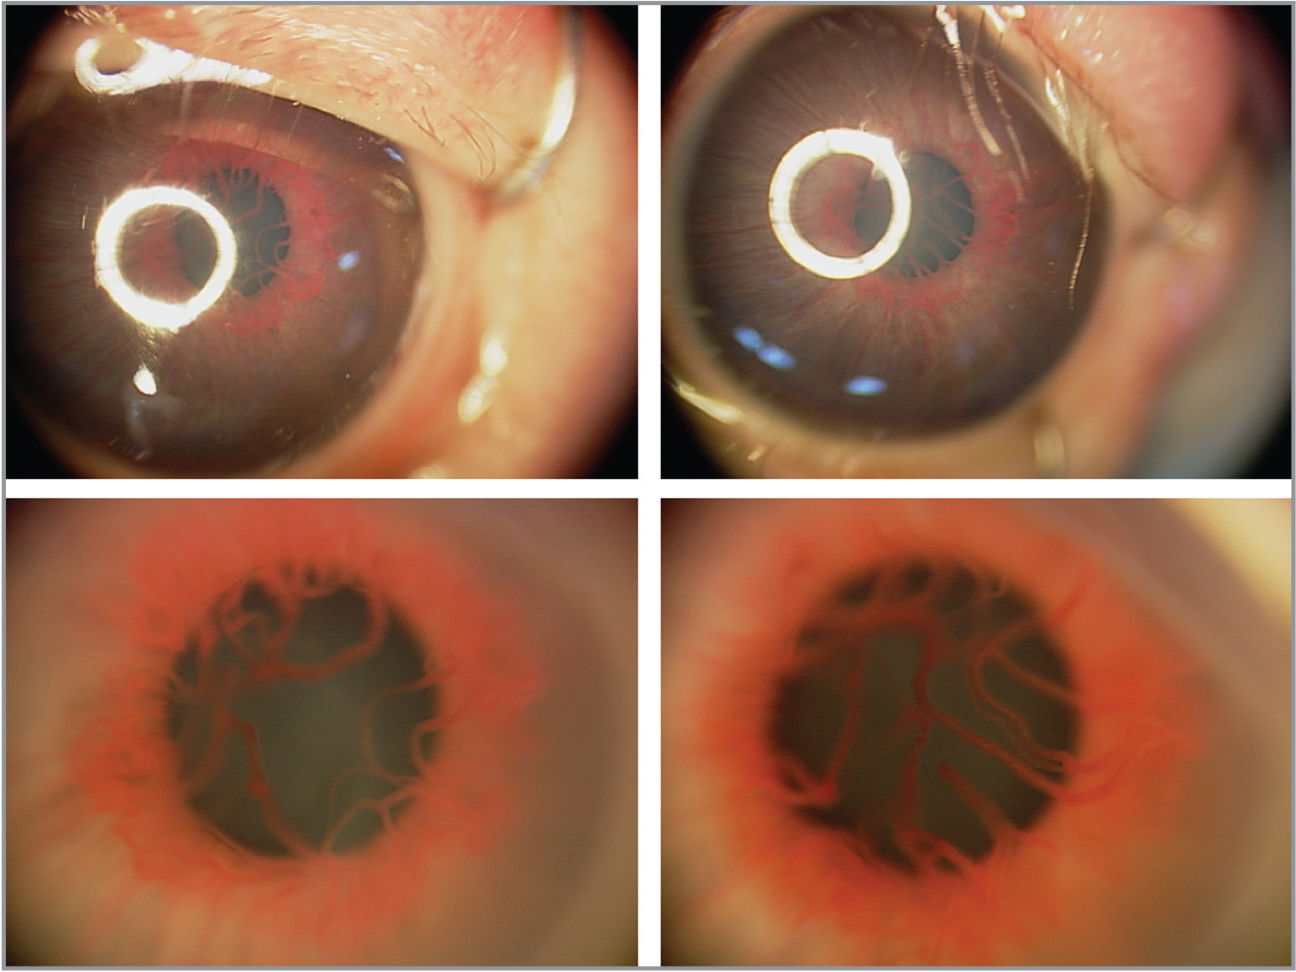 Top row demonstrates low-magnification views of the anterior chamber and iris of the right and left eyes. There is a thickened, elevated vascular network at the pupillary margin for 360°. Bottom row demonstrates high-magnification views of the same eyes demonstrating an exuberant, engorged iris neovascularization extending into the radial vessels. The pupil diameter in the bottom row is unchanged from the top row but appears larger due to smaller field of view.